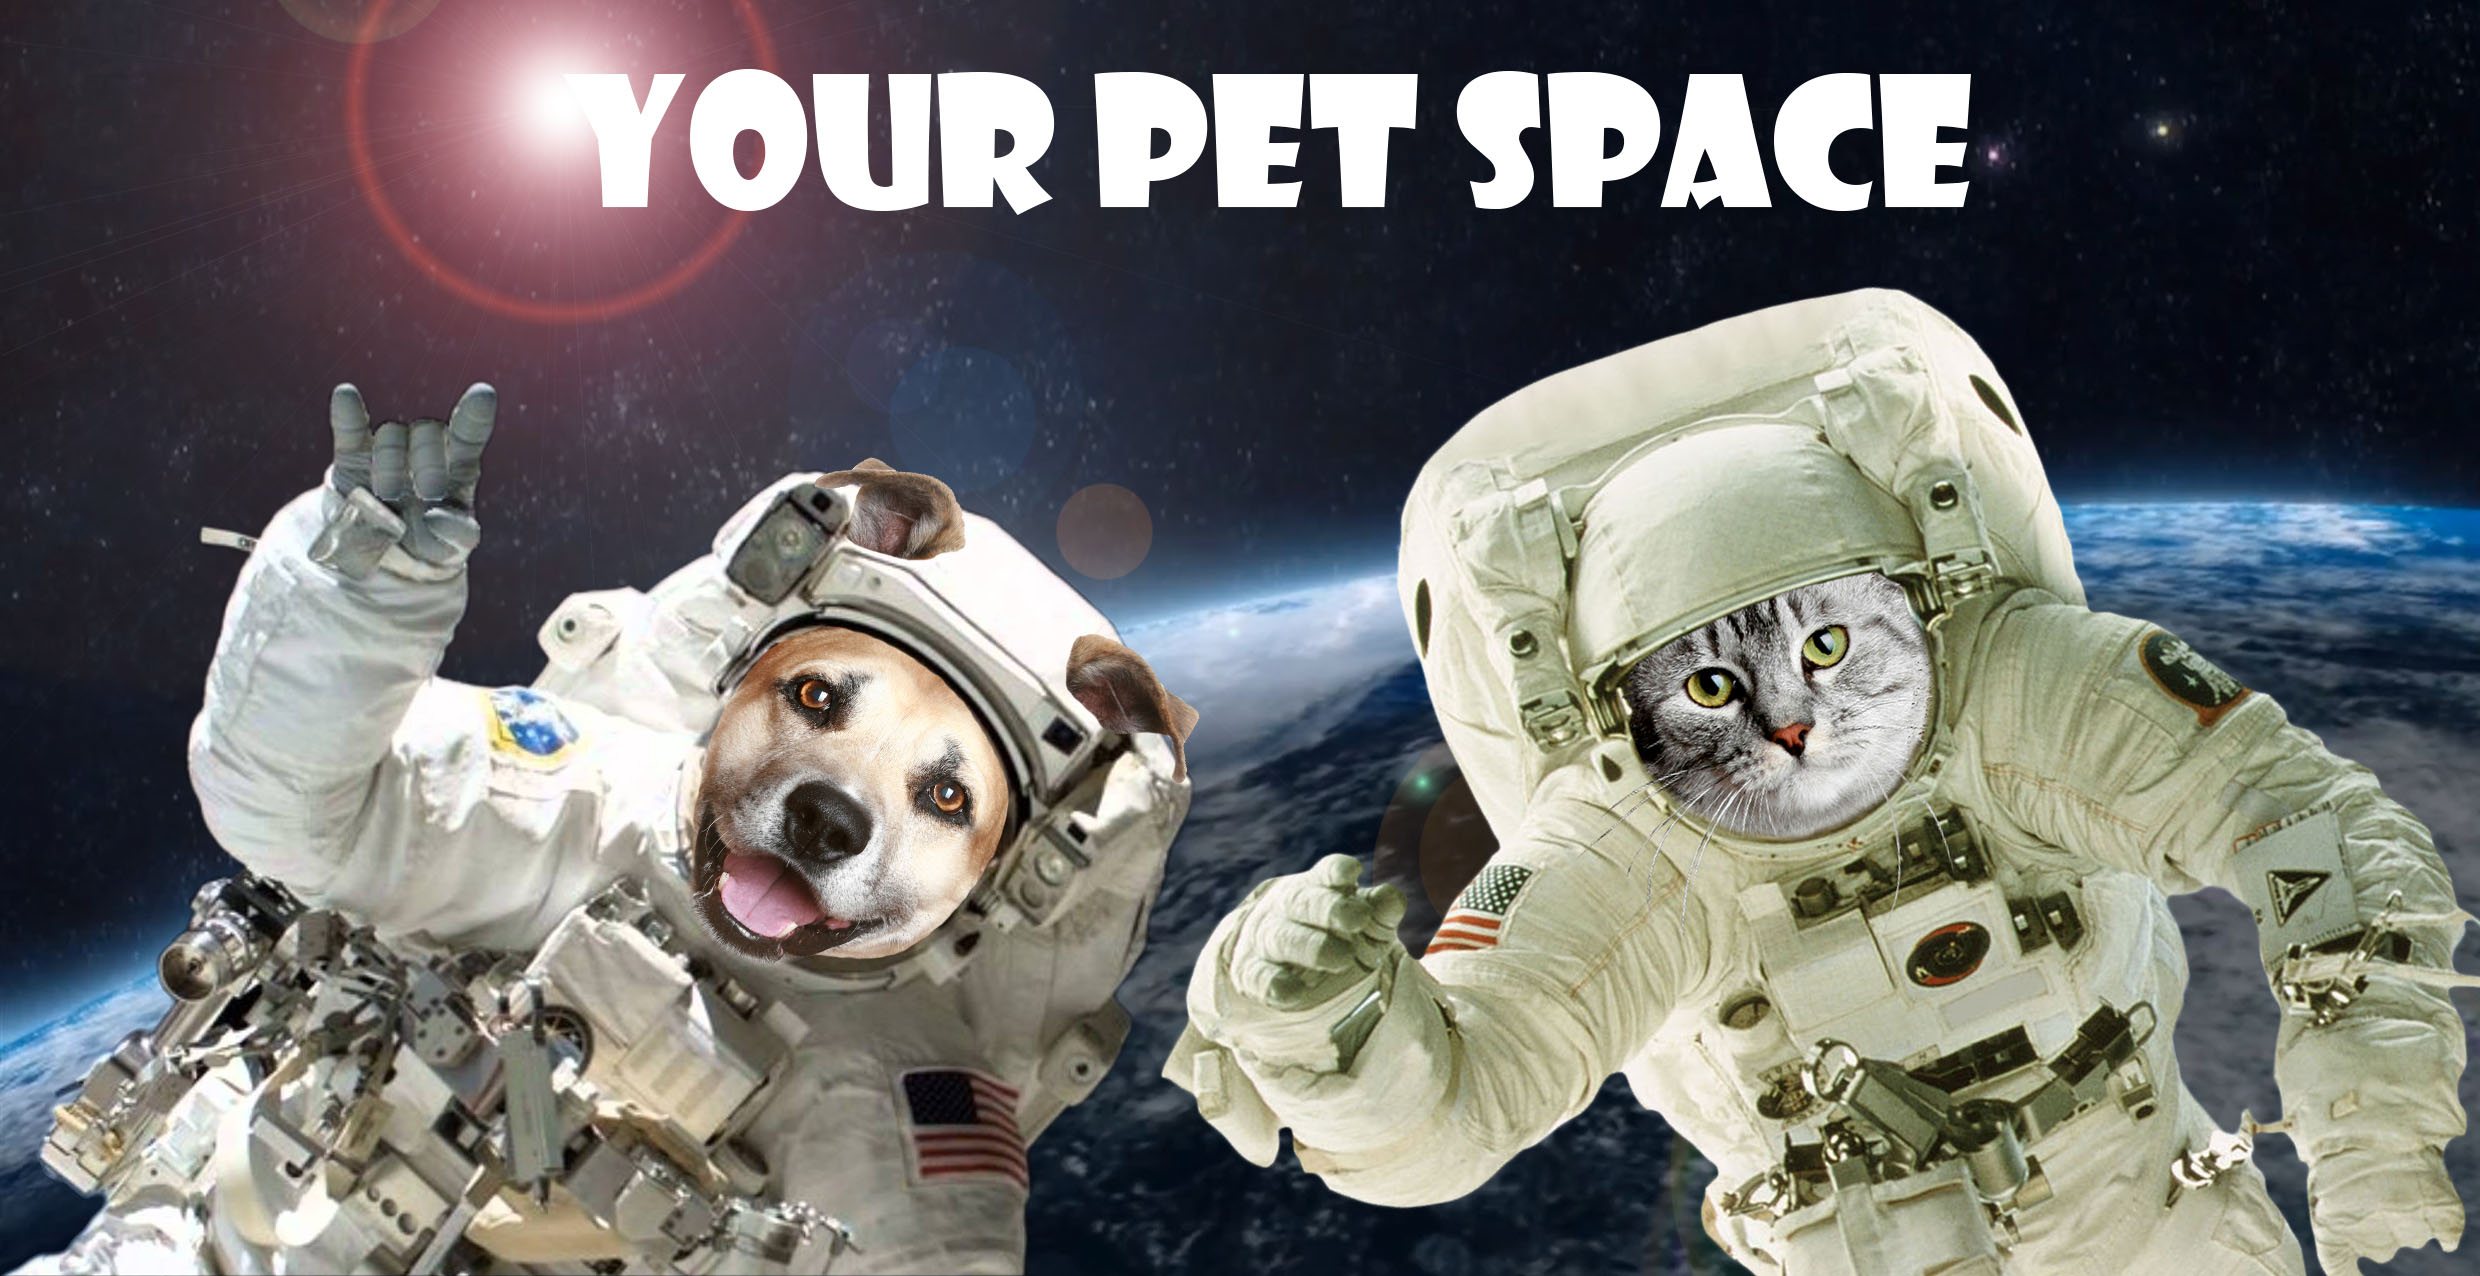 New Requirements For Your Pet Space0 (0)